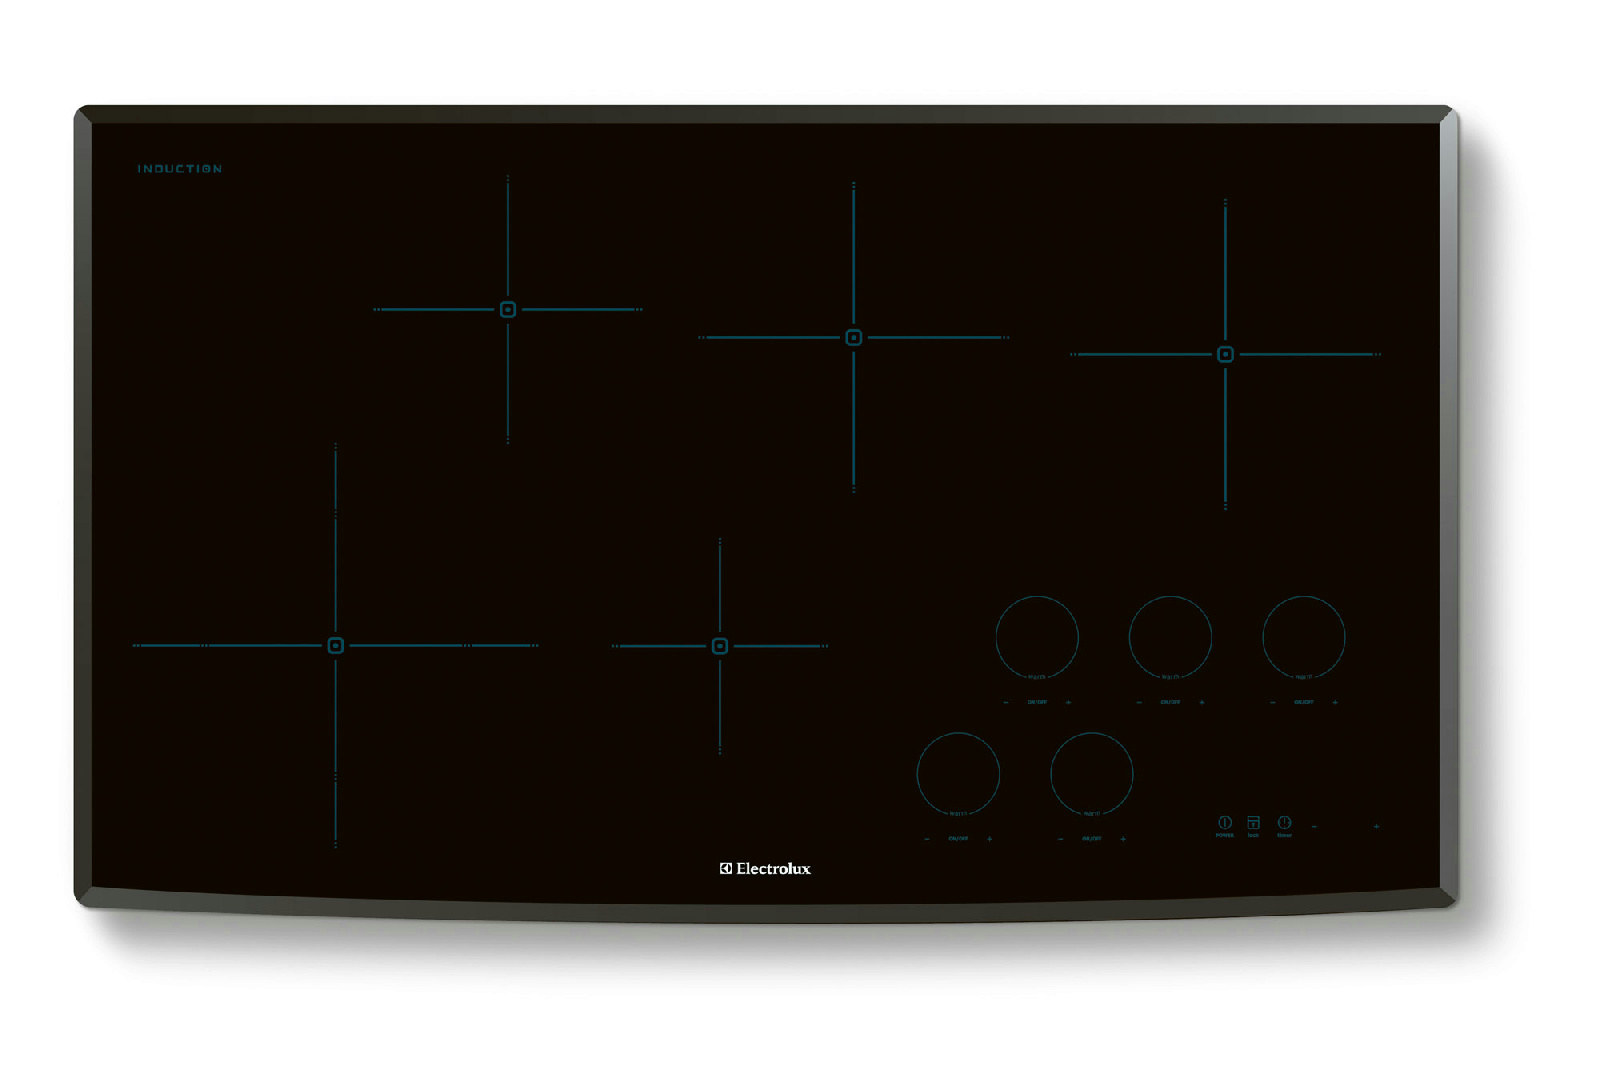 Electrolux 36 Induction Cooktop With 5 Cooking Zones Ew36ic60ls Circuit Diagram Of Cooker Images